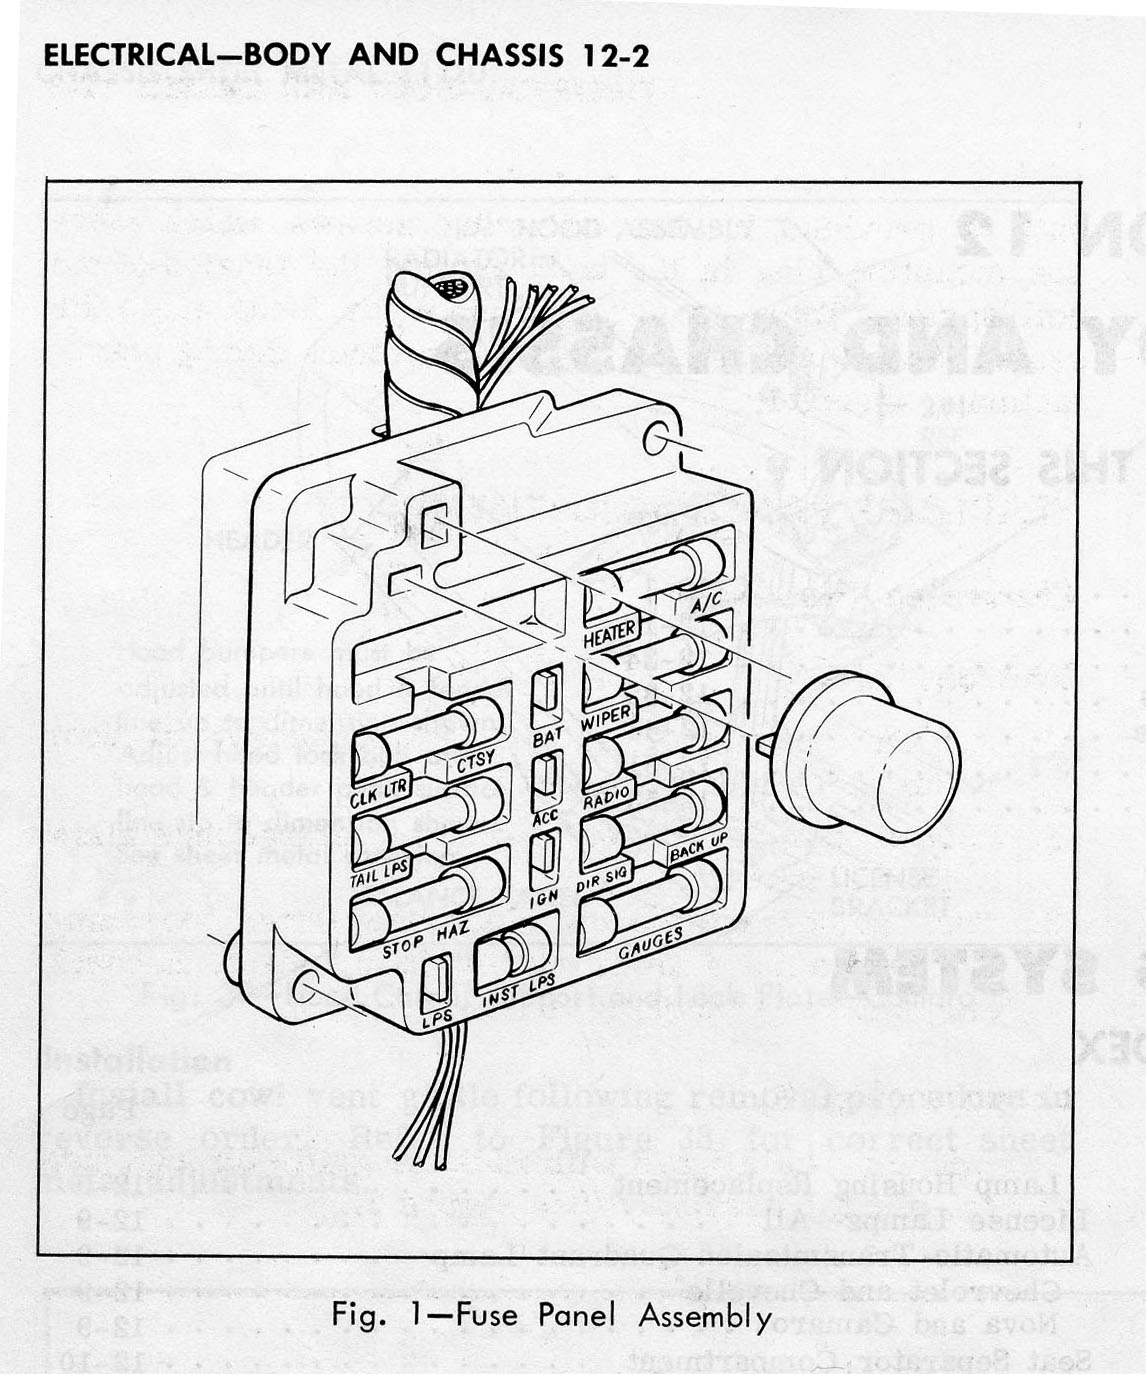 1967 camaro fuse box schematic